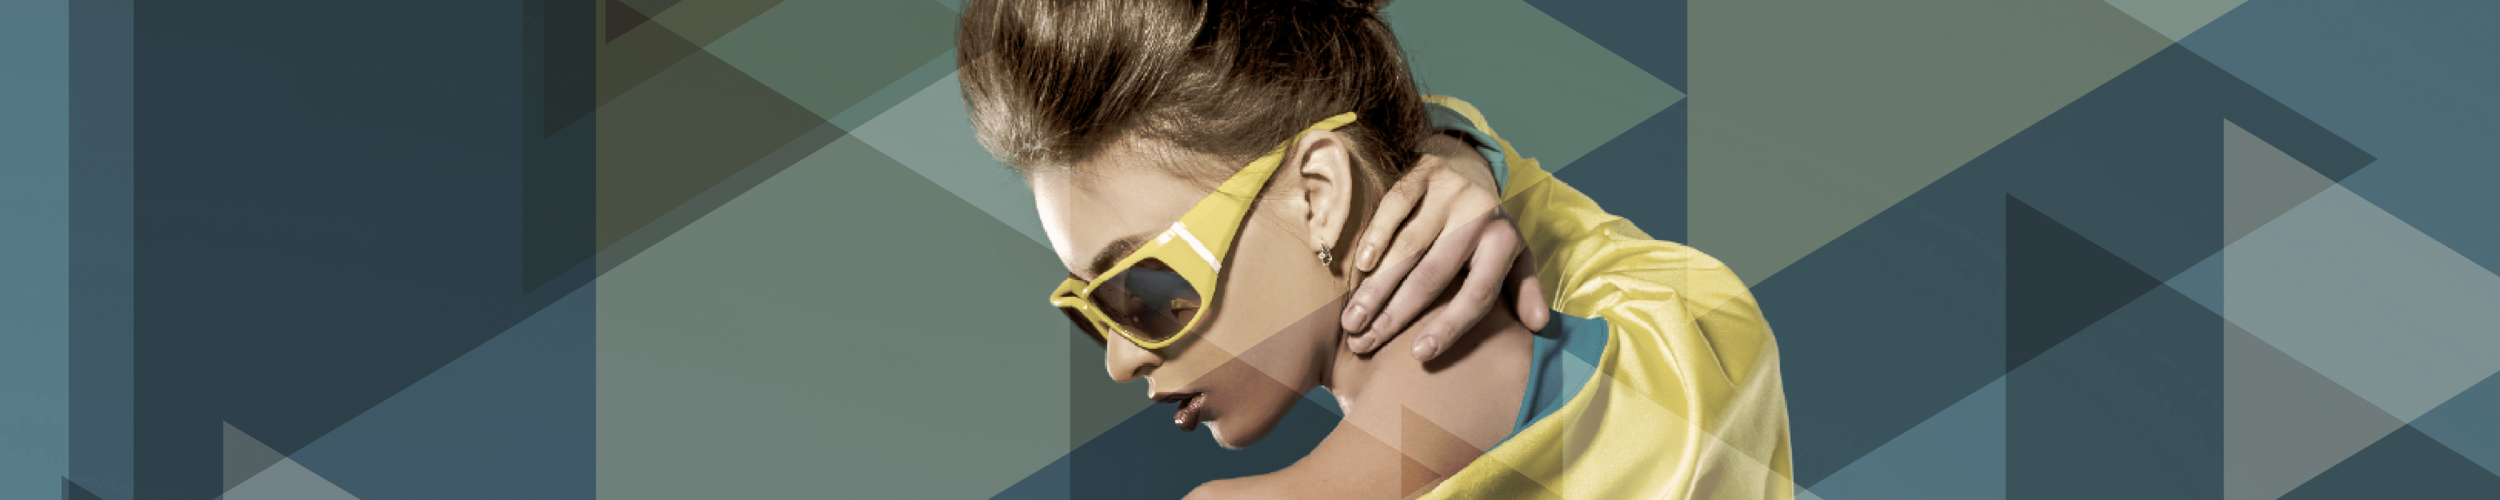 Header Banners 300-09-min.png